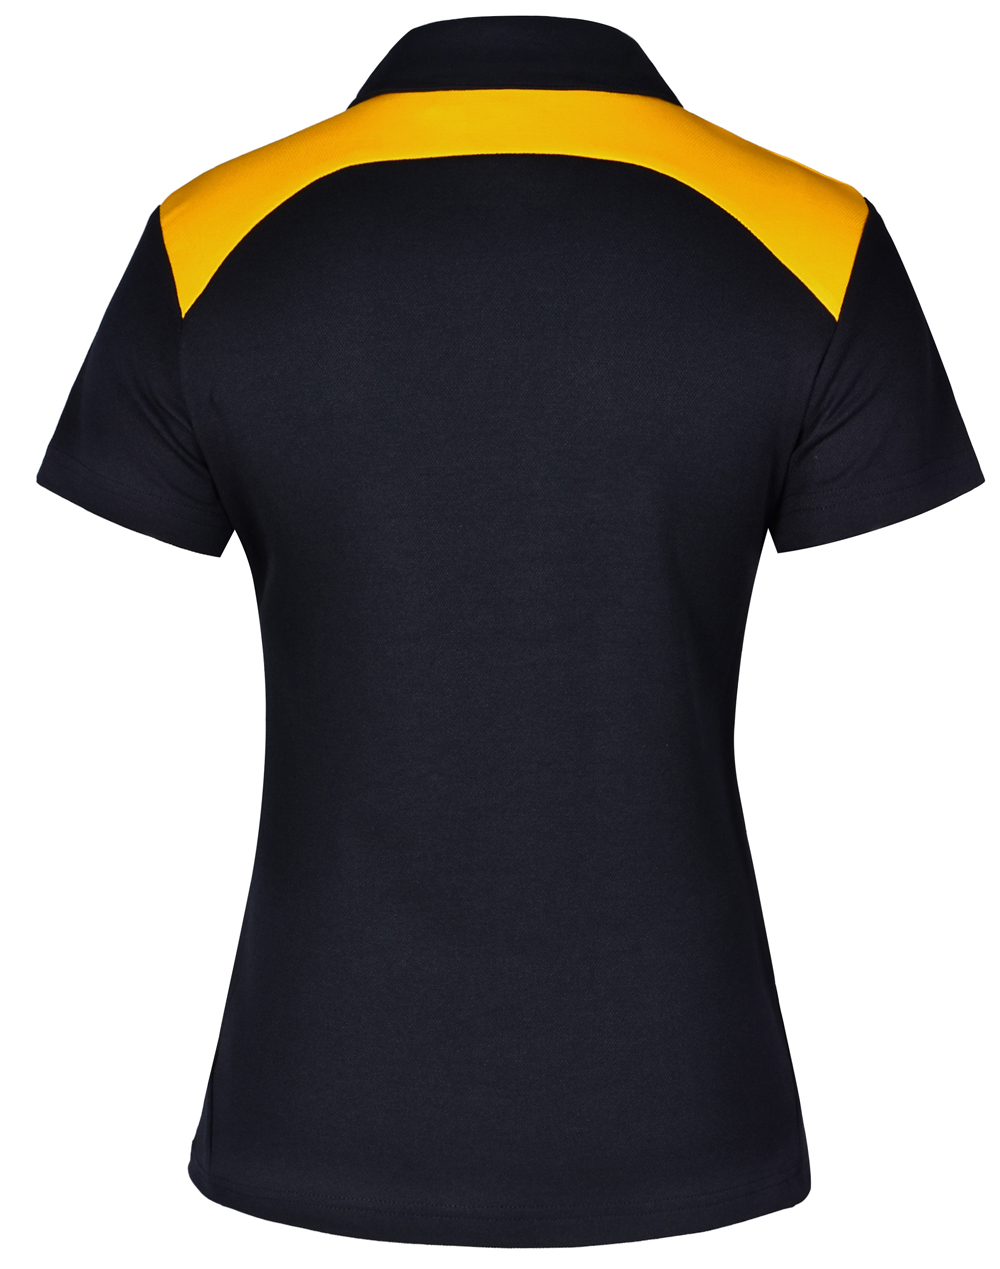 https://s3-ap-southeast-1.amazonaws.com/ws-imgs/POLOSHIRTS/PS32A_NavyGold_Back.jpg